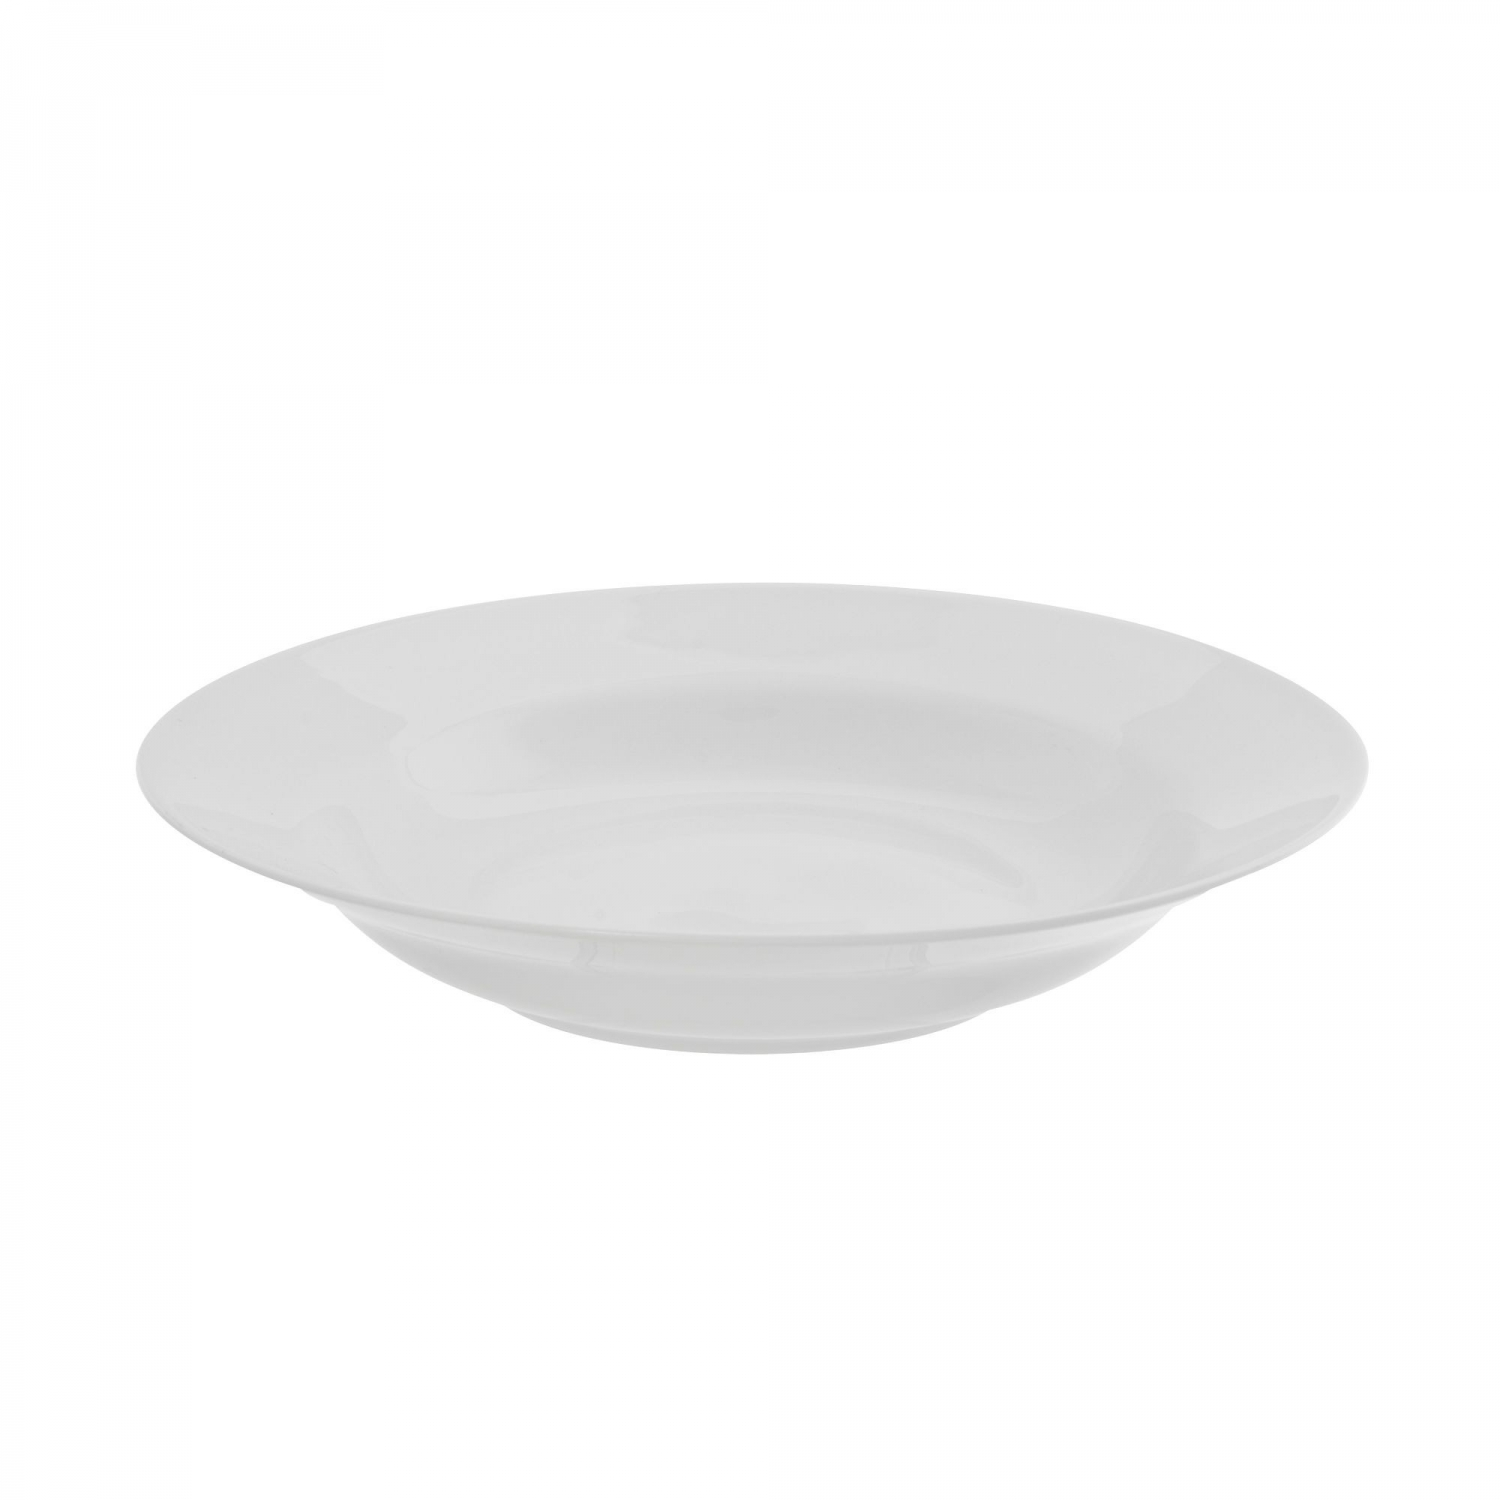 10 Strawberry Street RW0003 Royal White Rim Soup Bowl 8 oz.